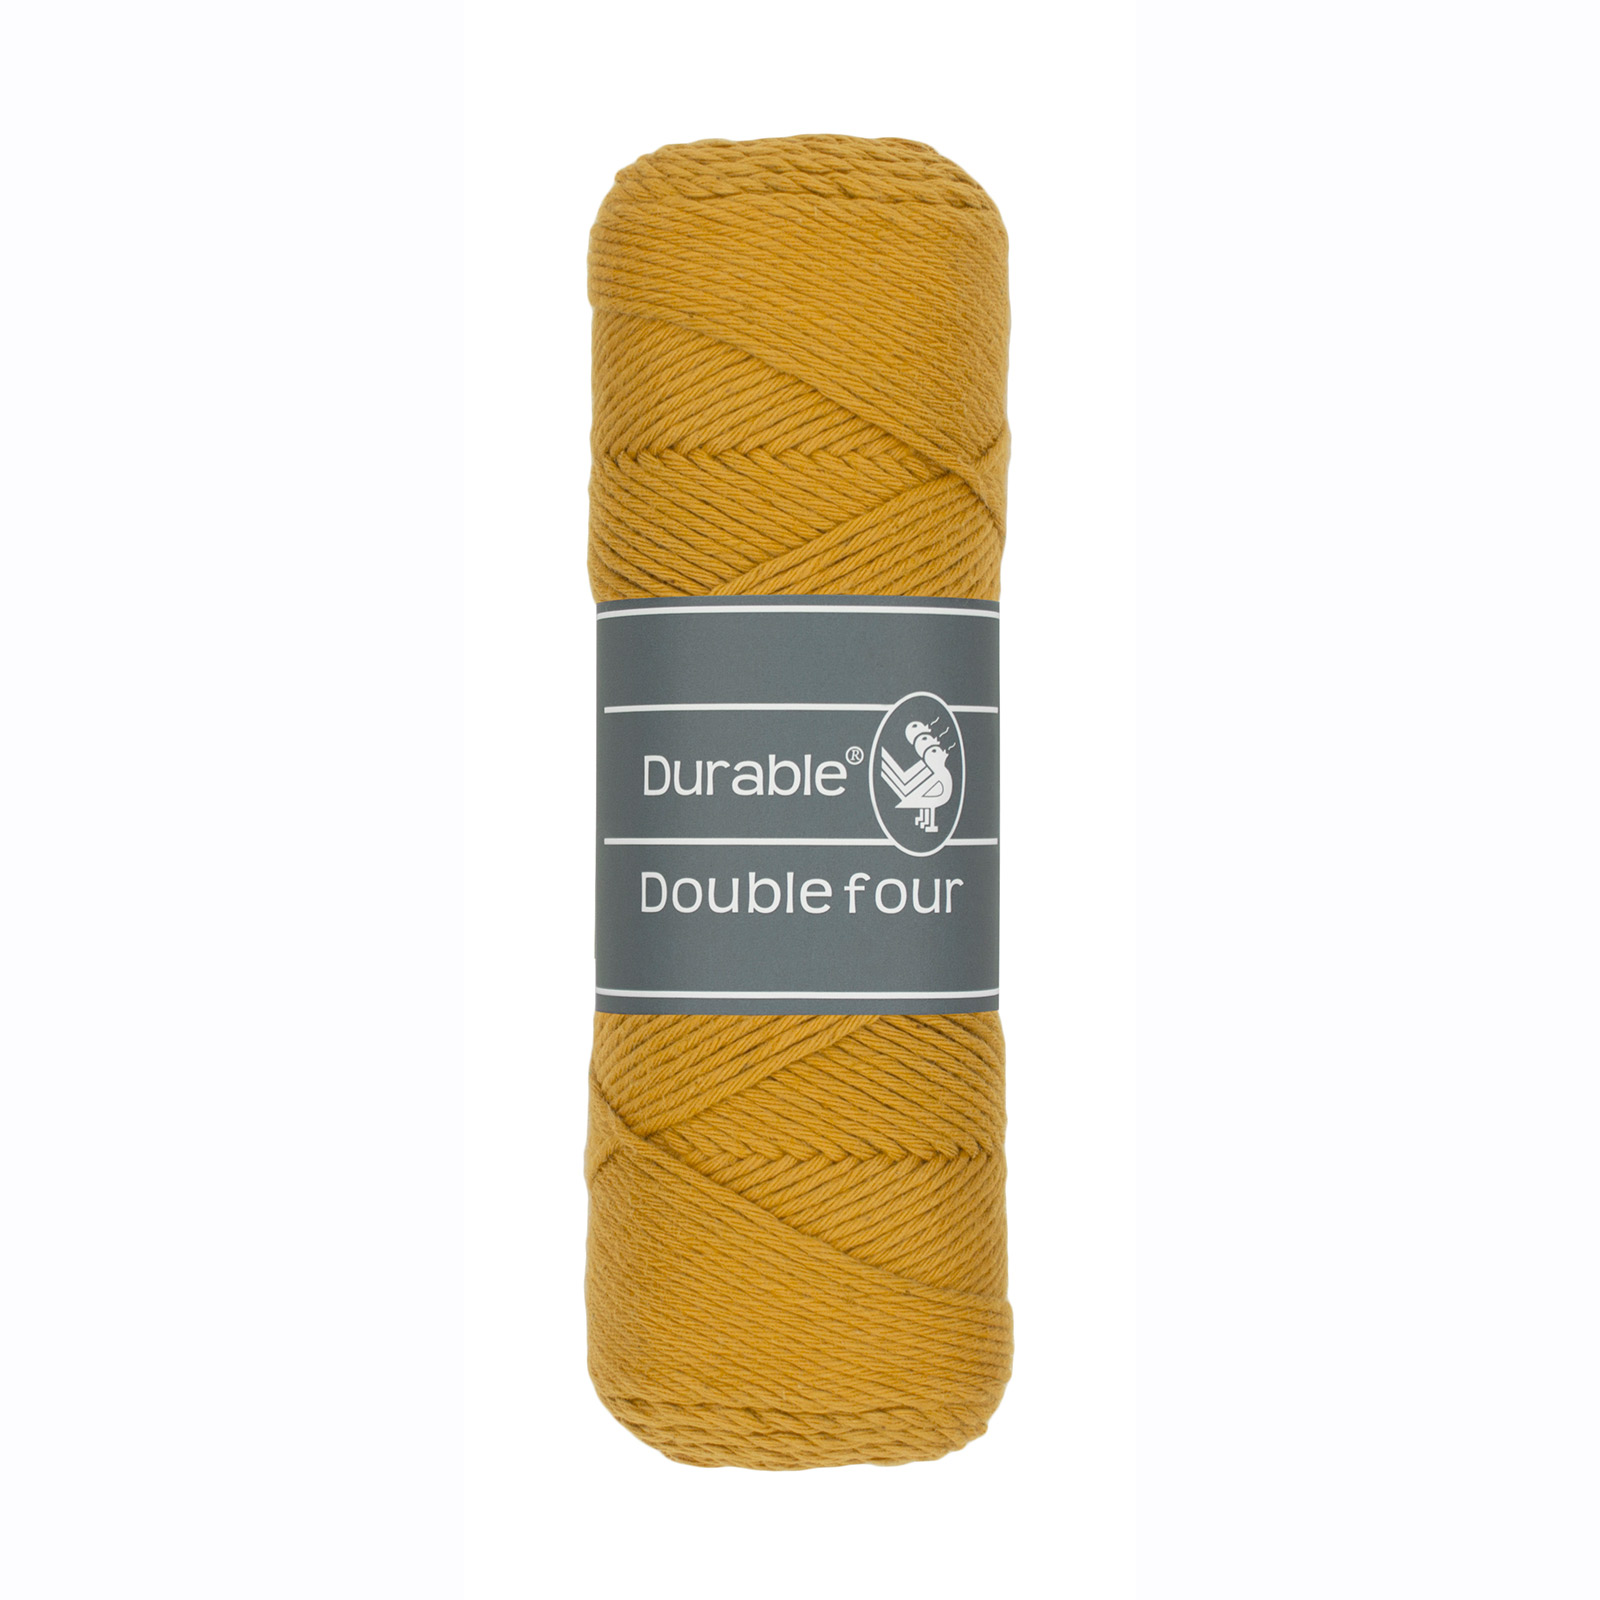 Durable Double Four – 2182 Ochre